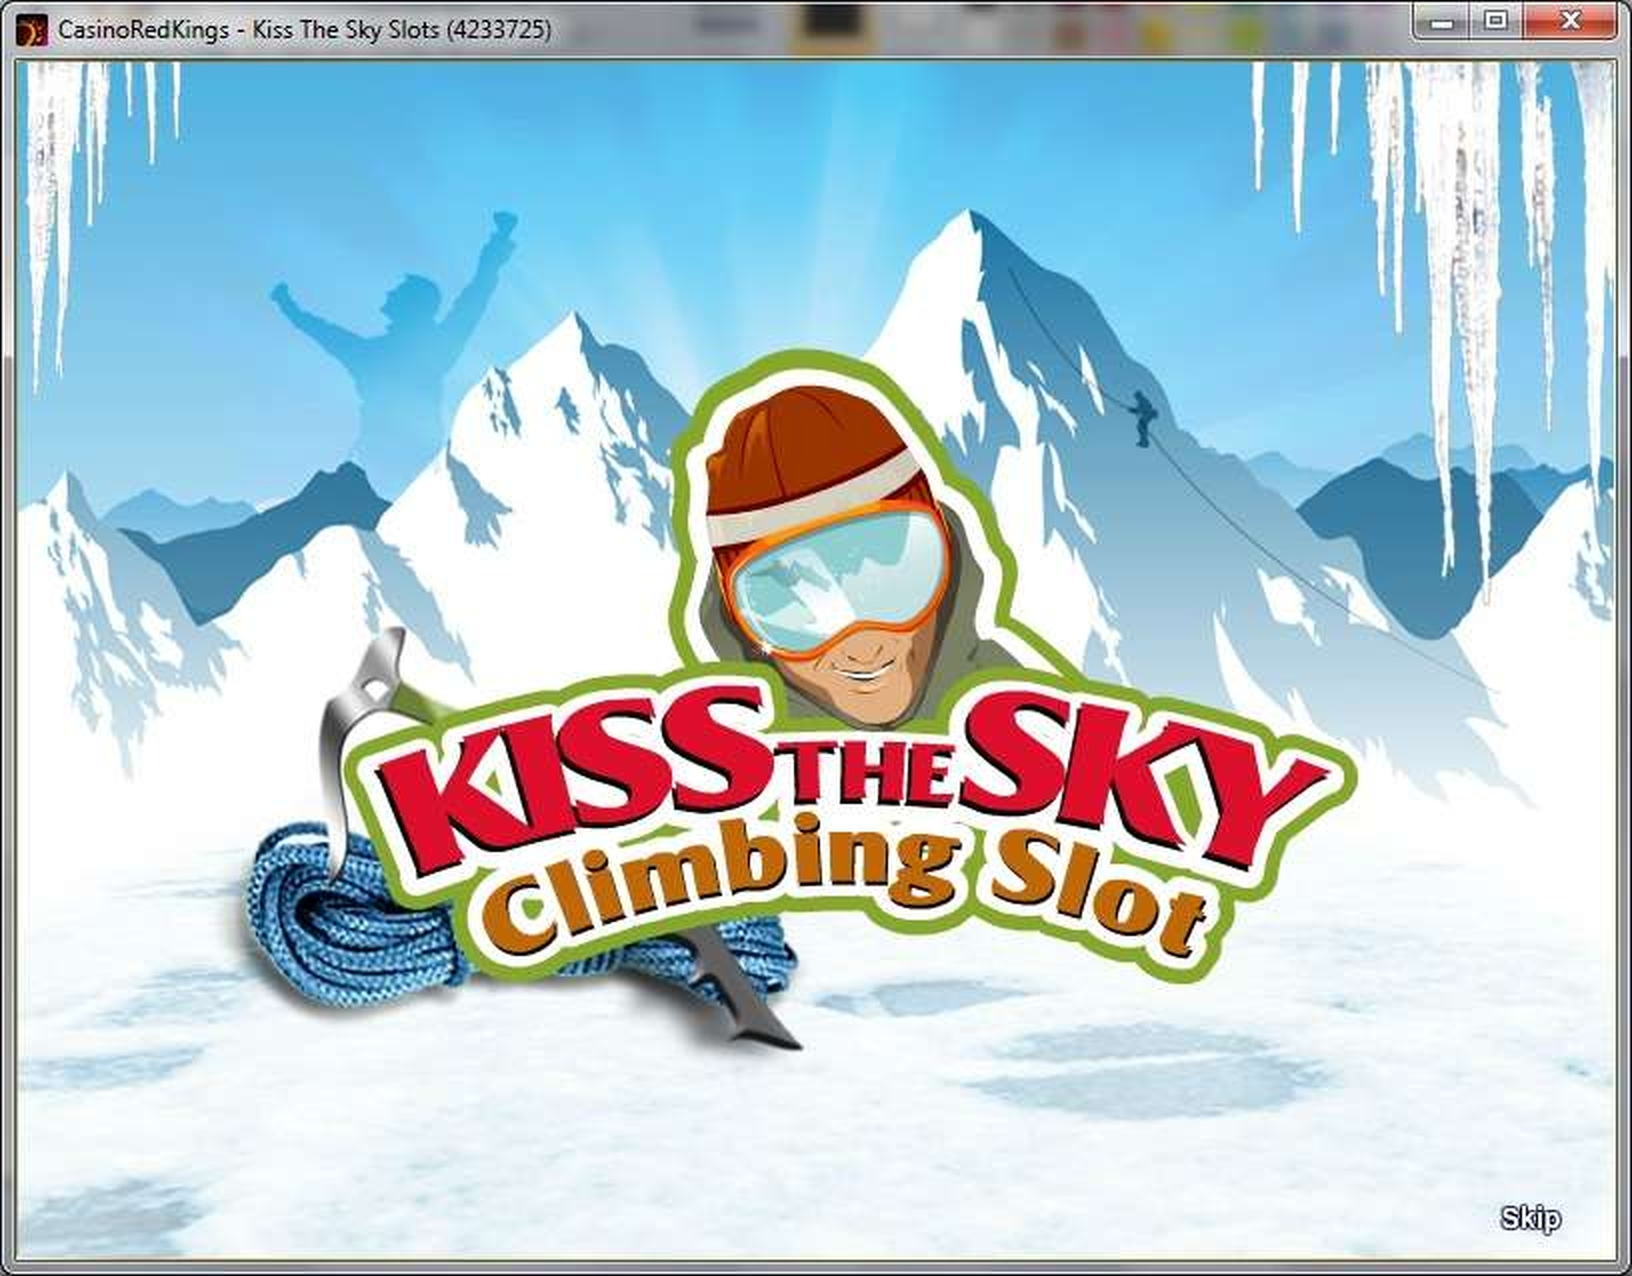 The Kiss The Sky Climbing Slot Online Slot Demo Game by SkillOnNet